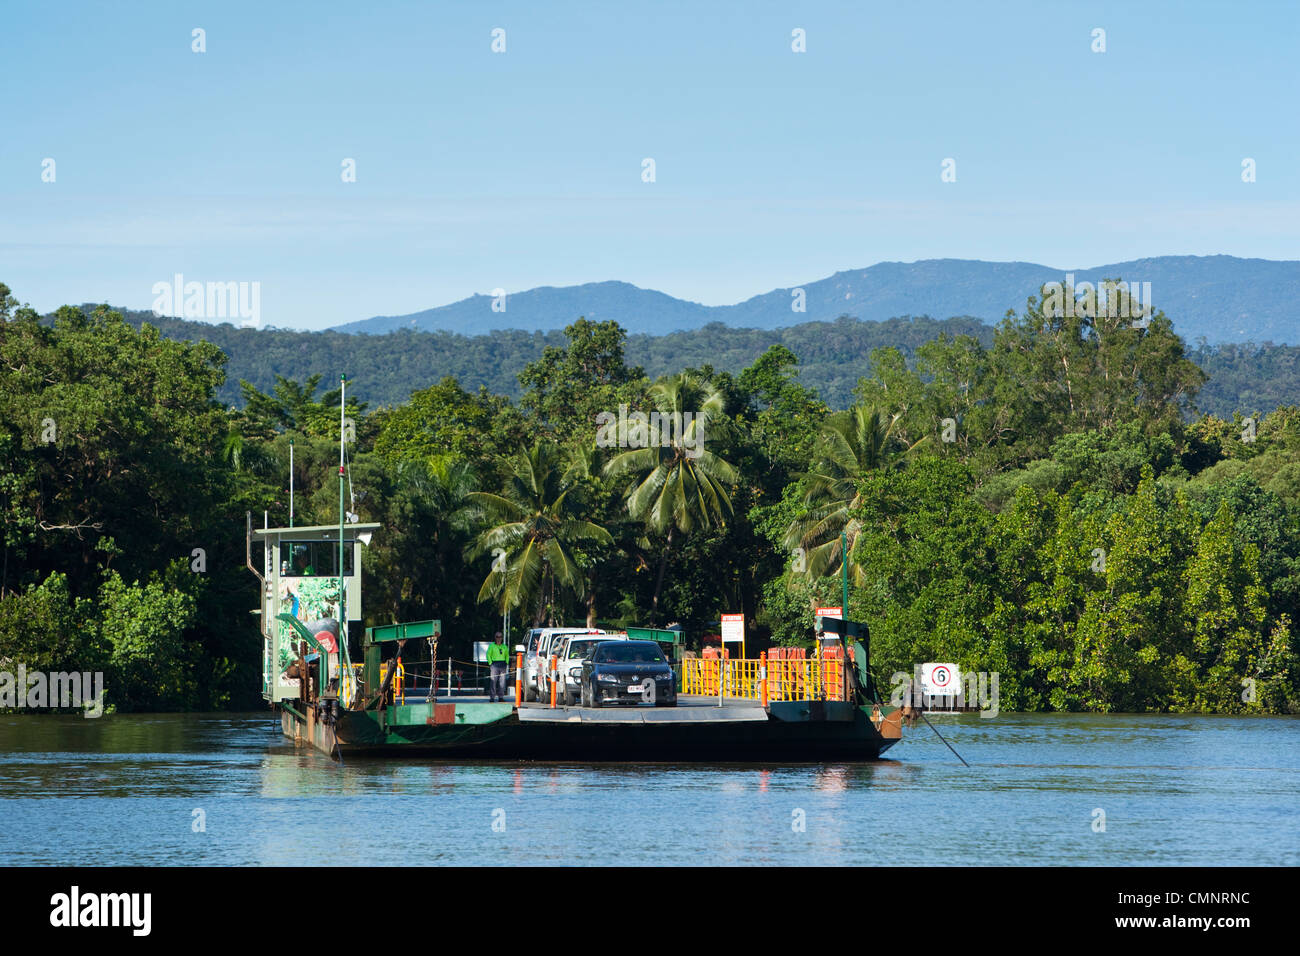 The Daintree River cable ferry. Daintree National Park, Queensland, Australia - Stock Image